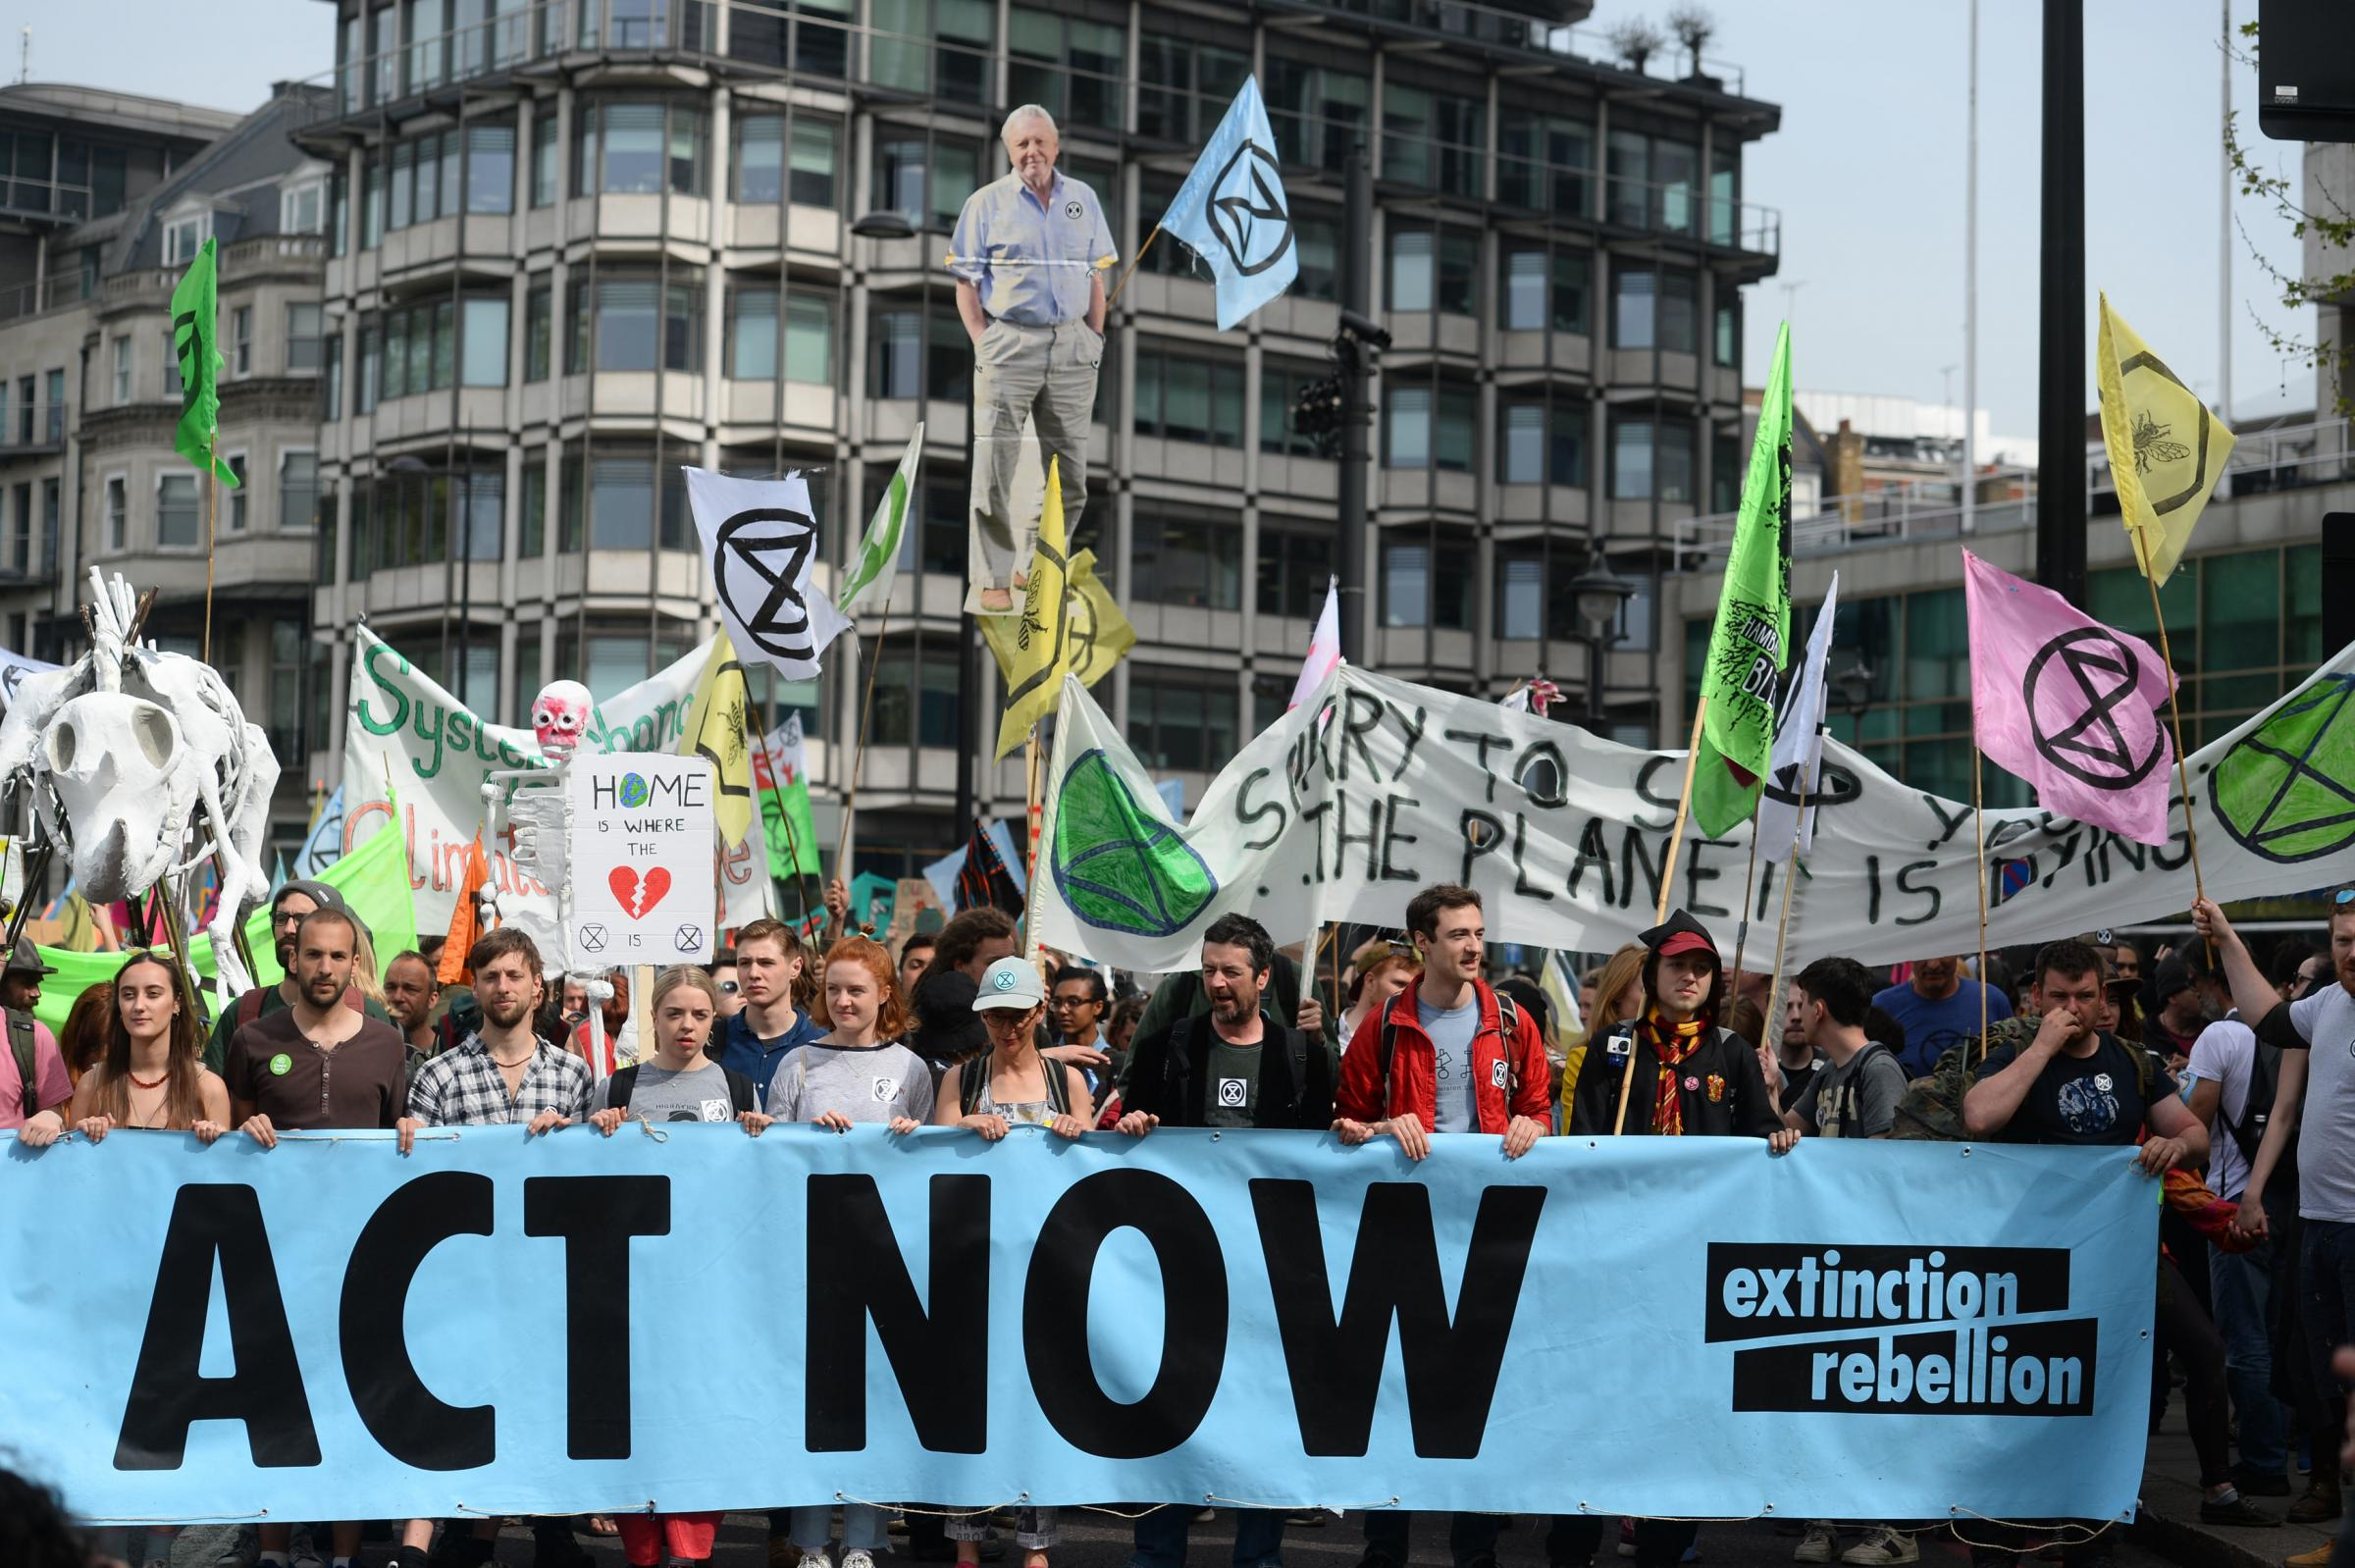 Some of the Extinction Rebellion protesters in London this week. Picture: PA Wire